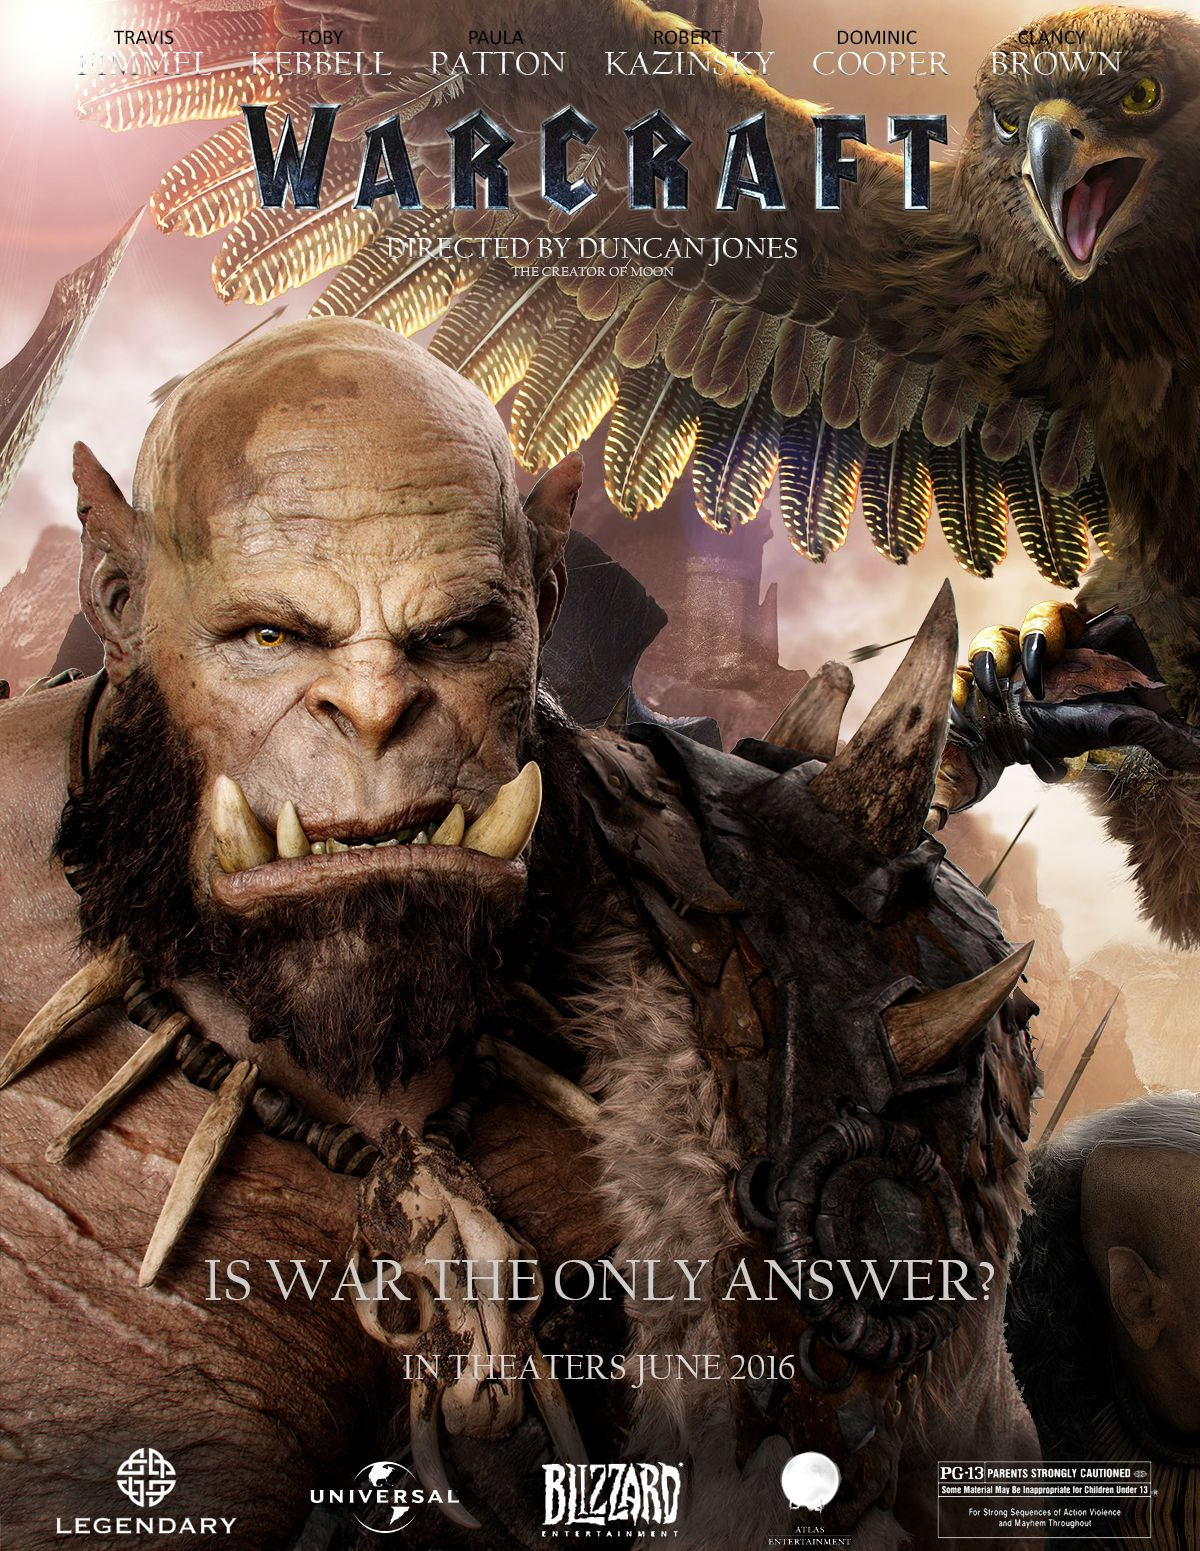 How To Make An Interesting Art Piece Using Tree Branches Ehow Warcraft Movie Warcraft Movie Posters